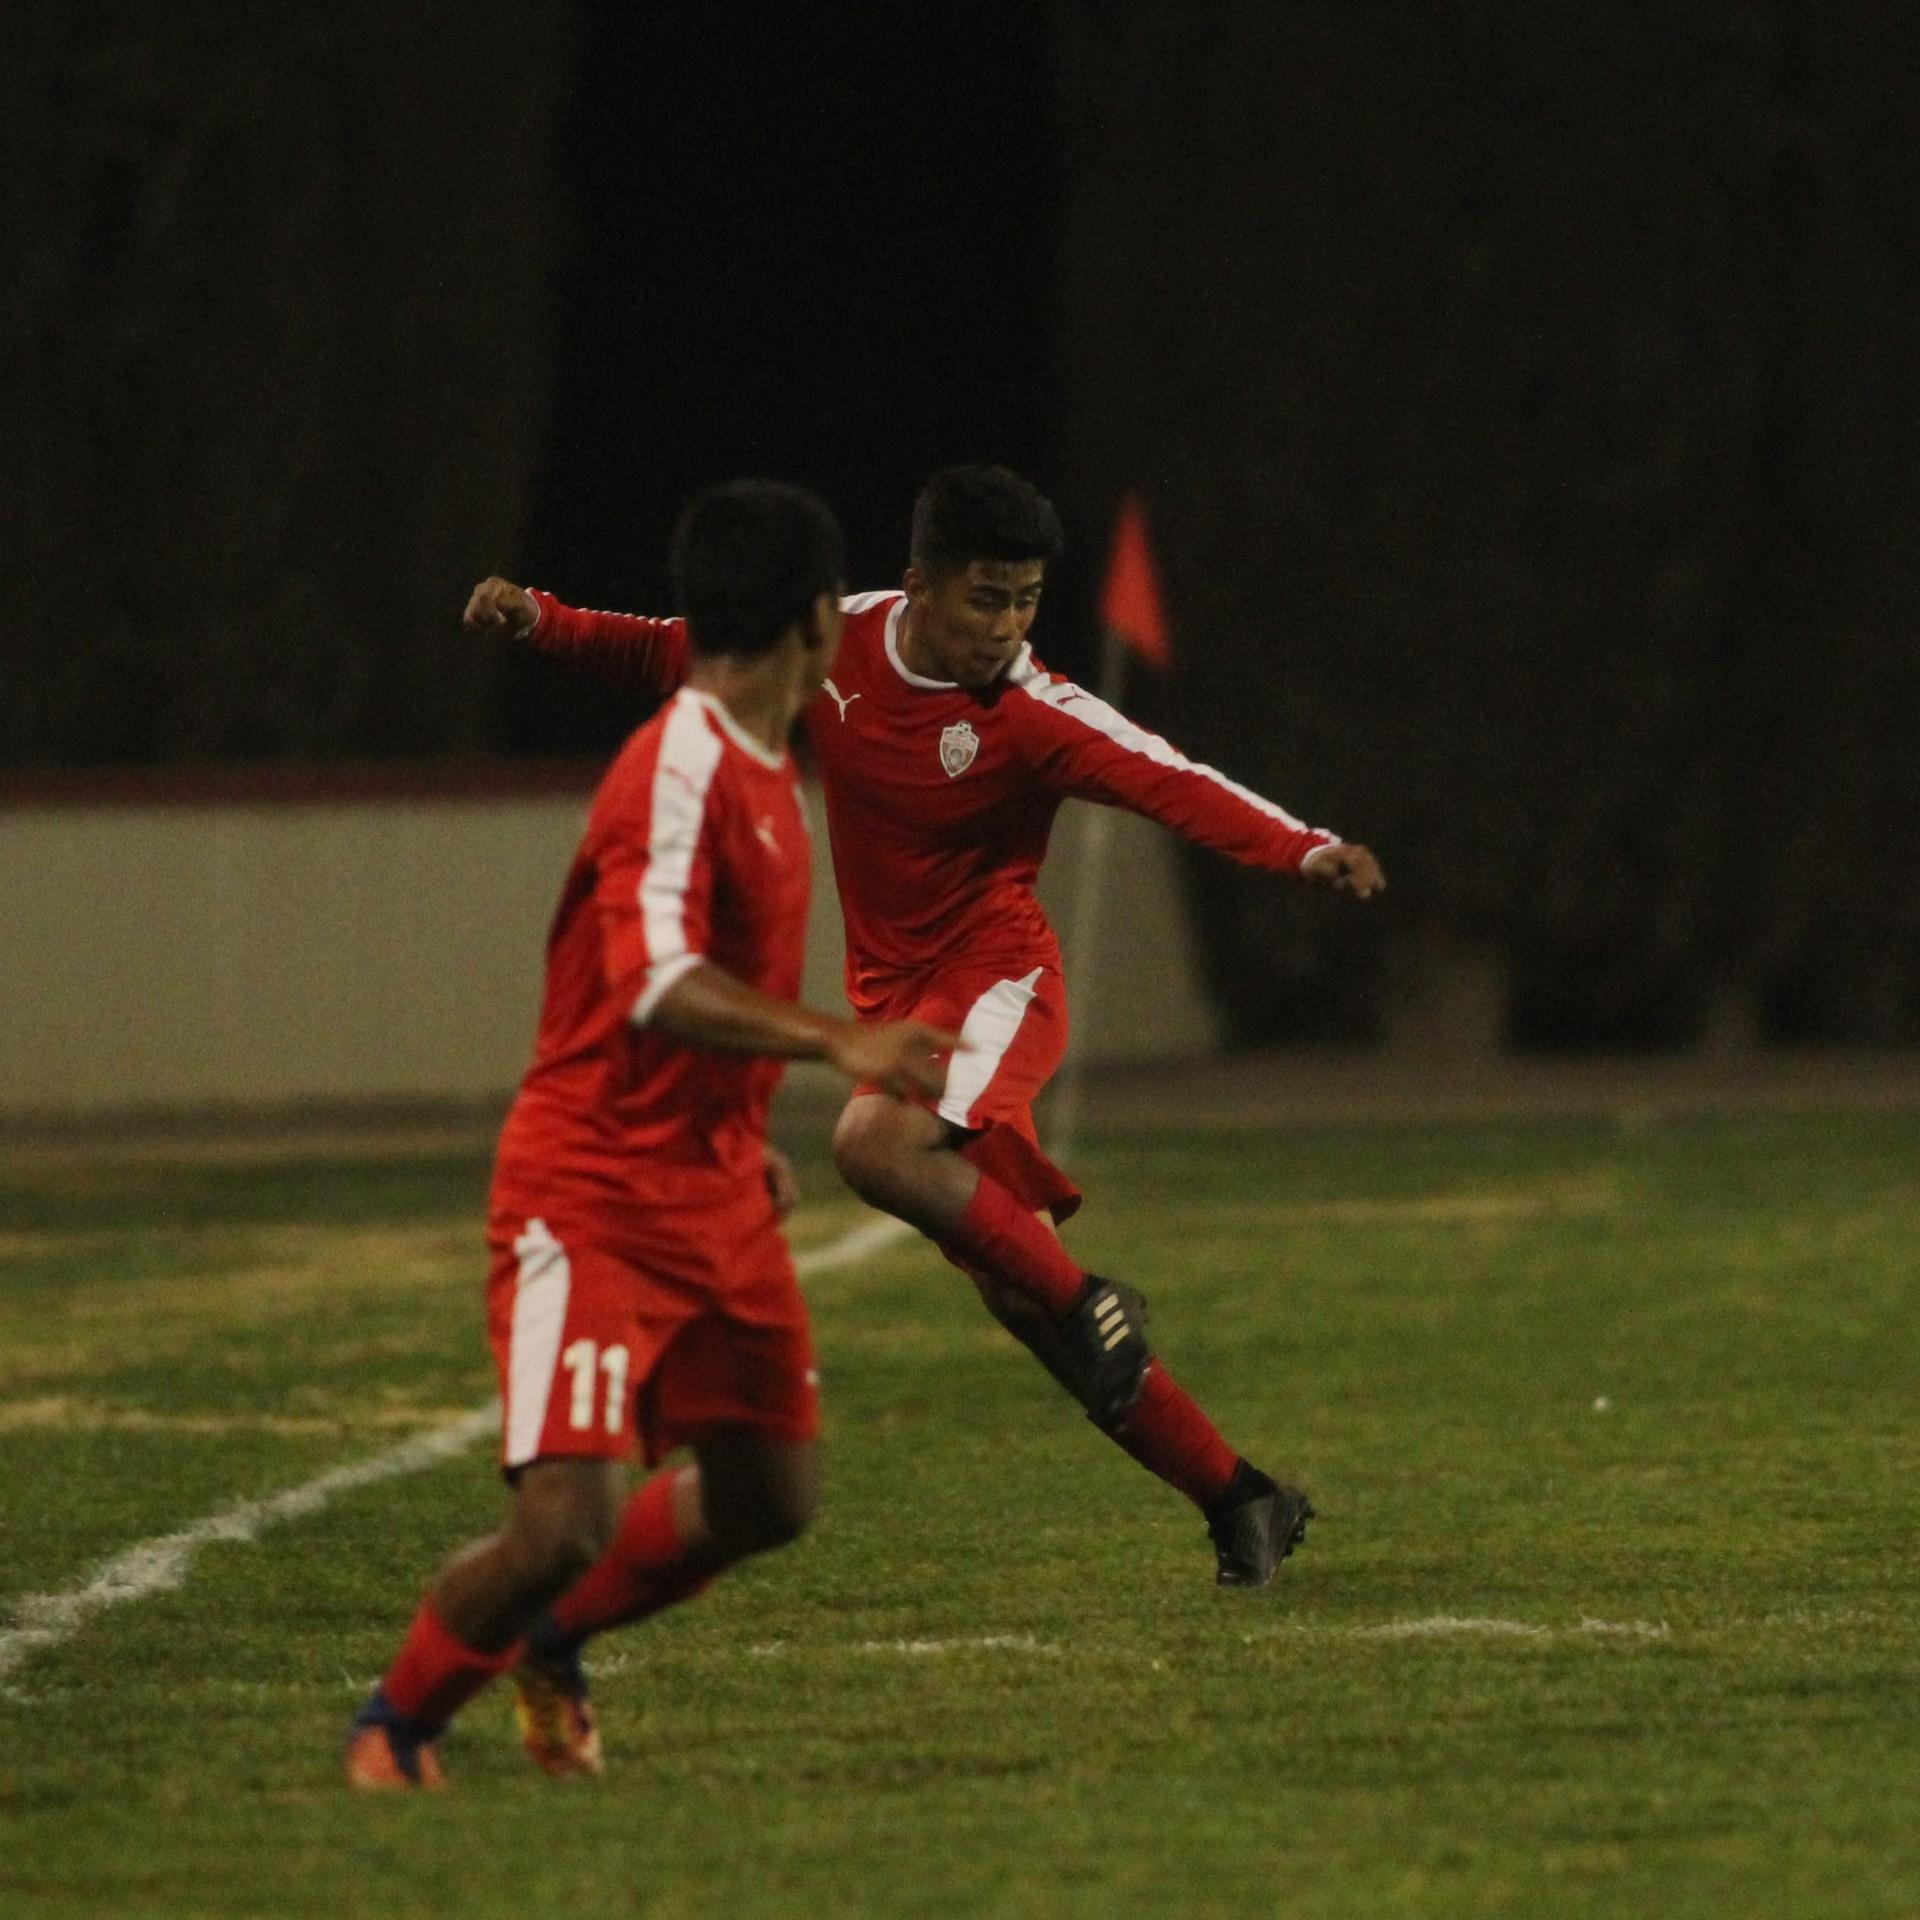 Alejandro Montes After Kicking the Ball